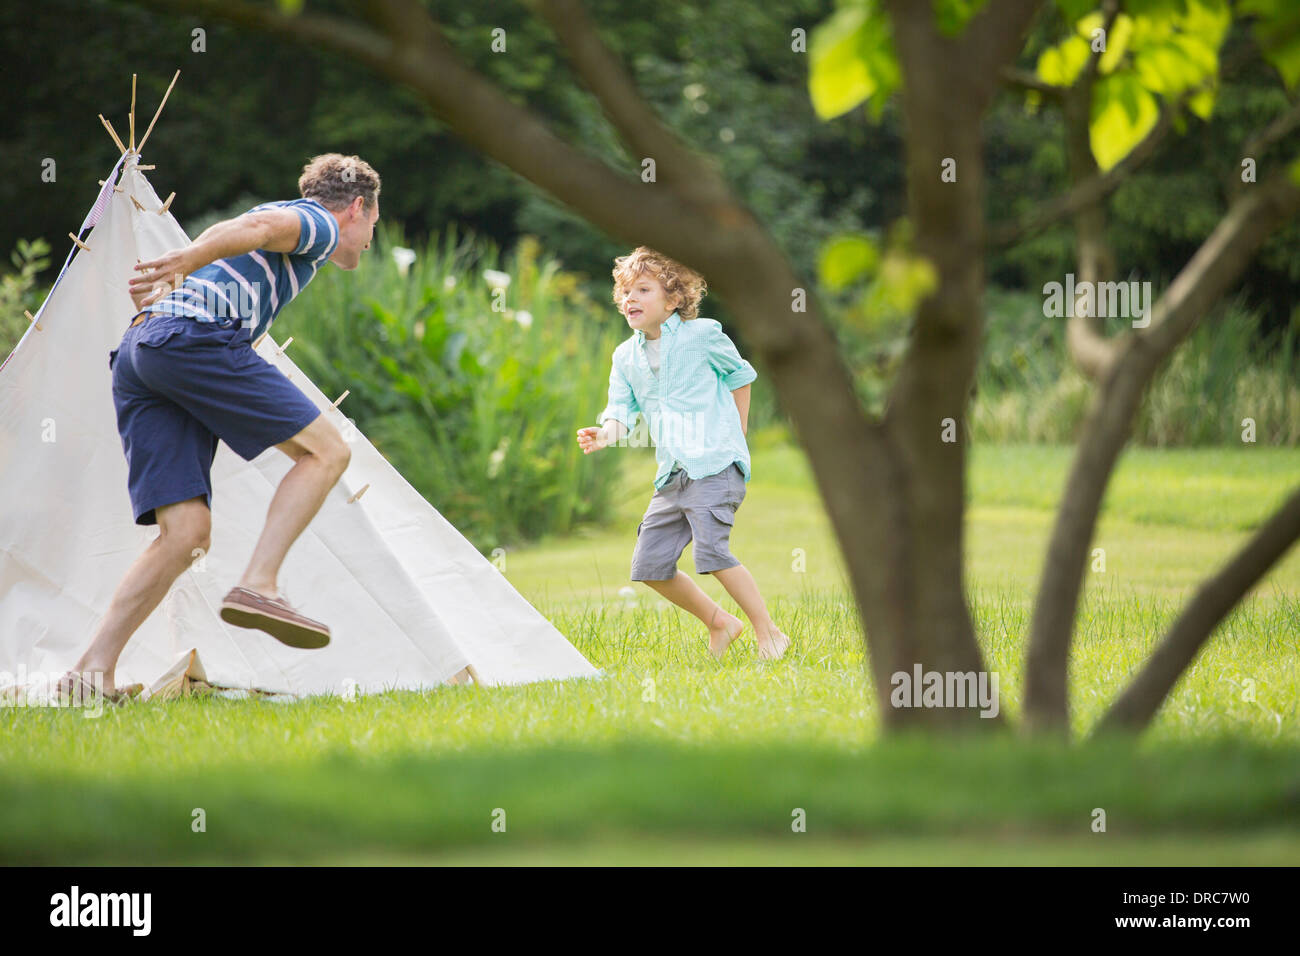 Father chasing son around teepee in backyard - Stock Image